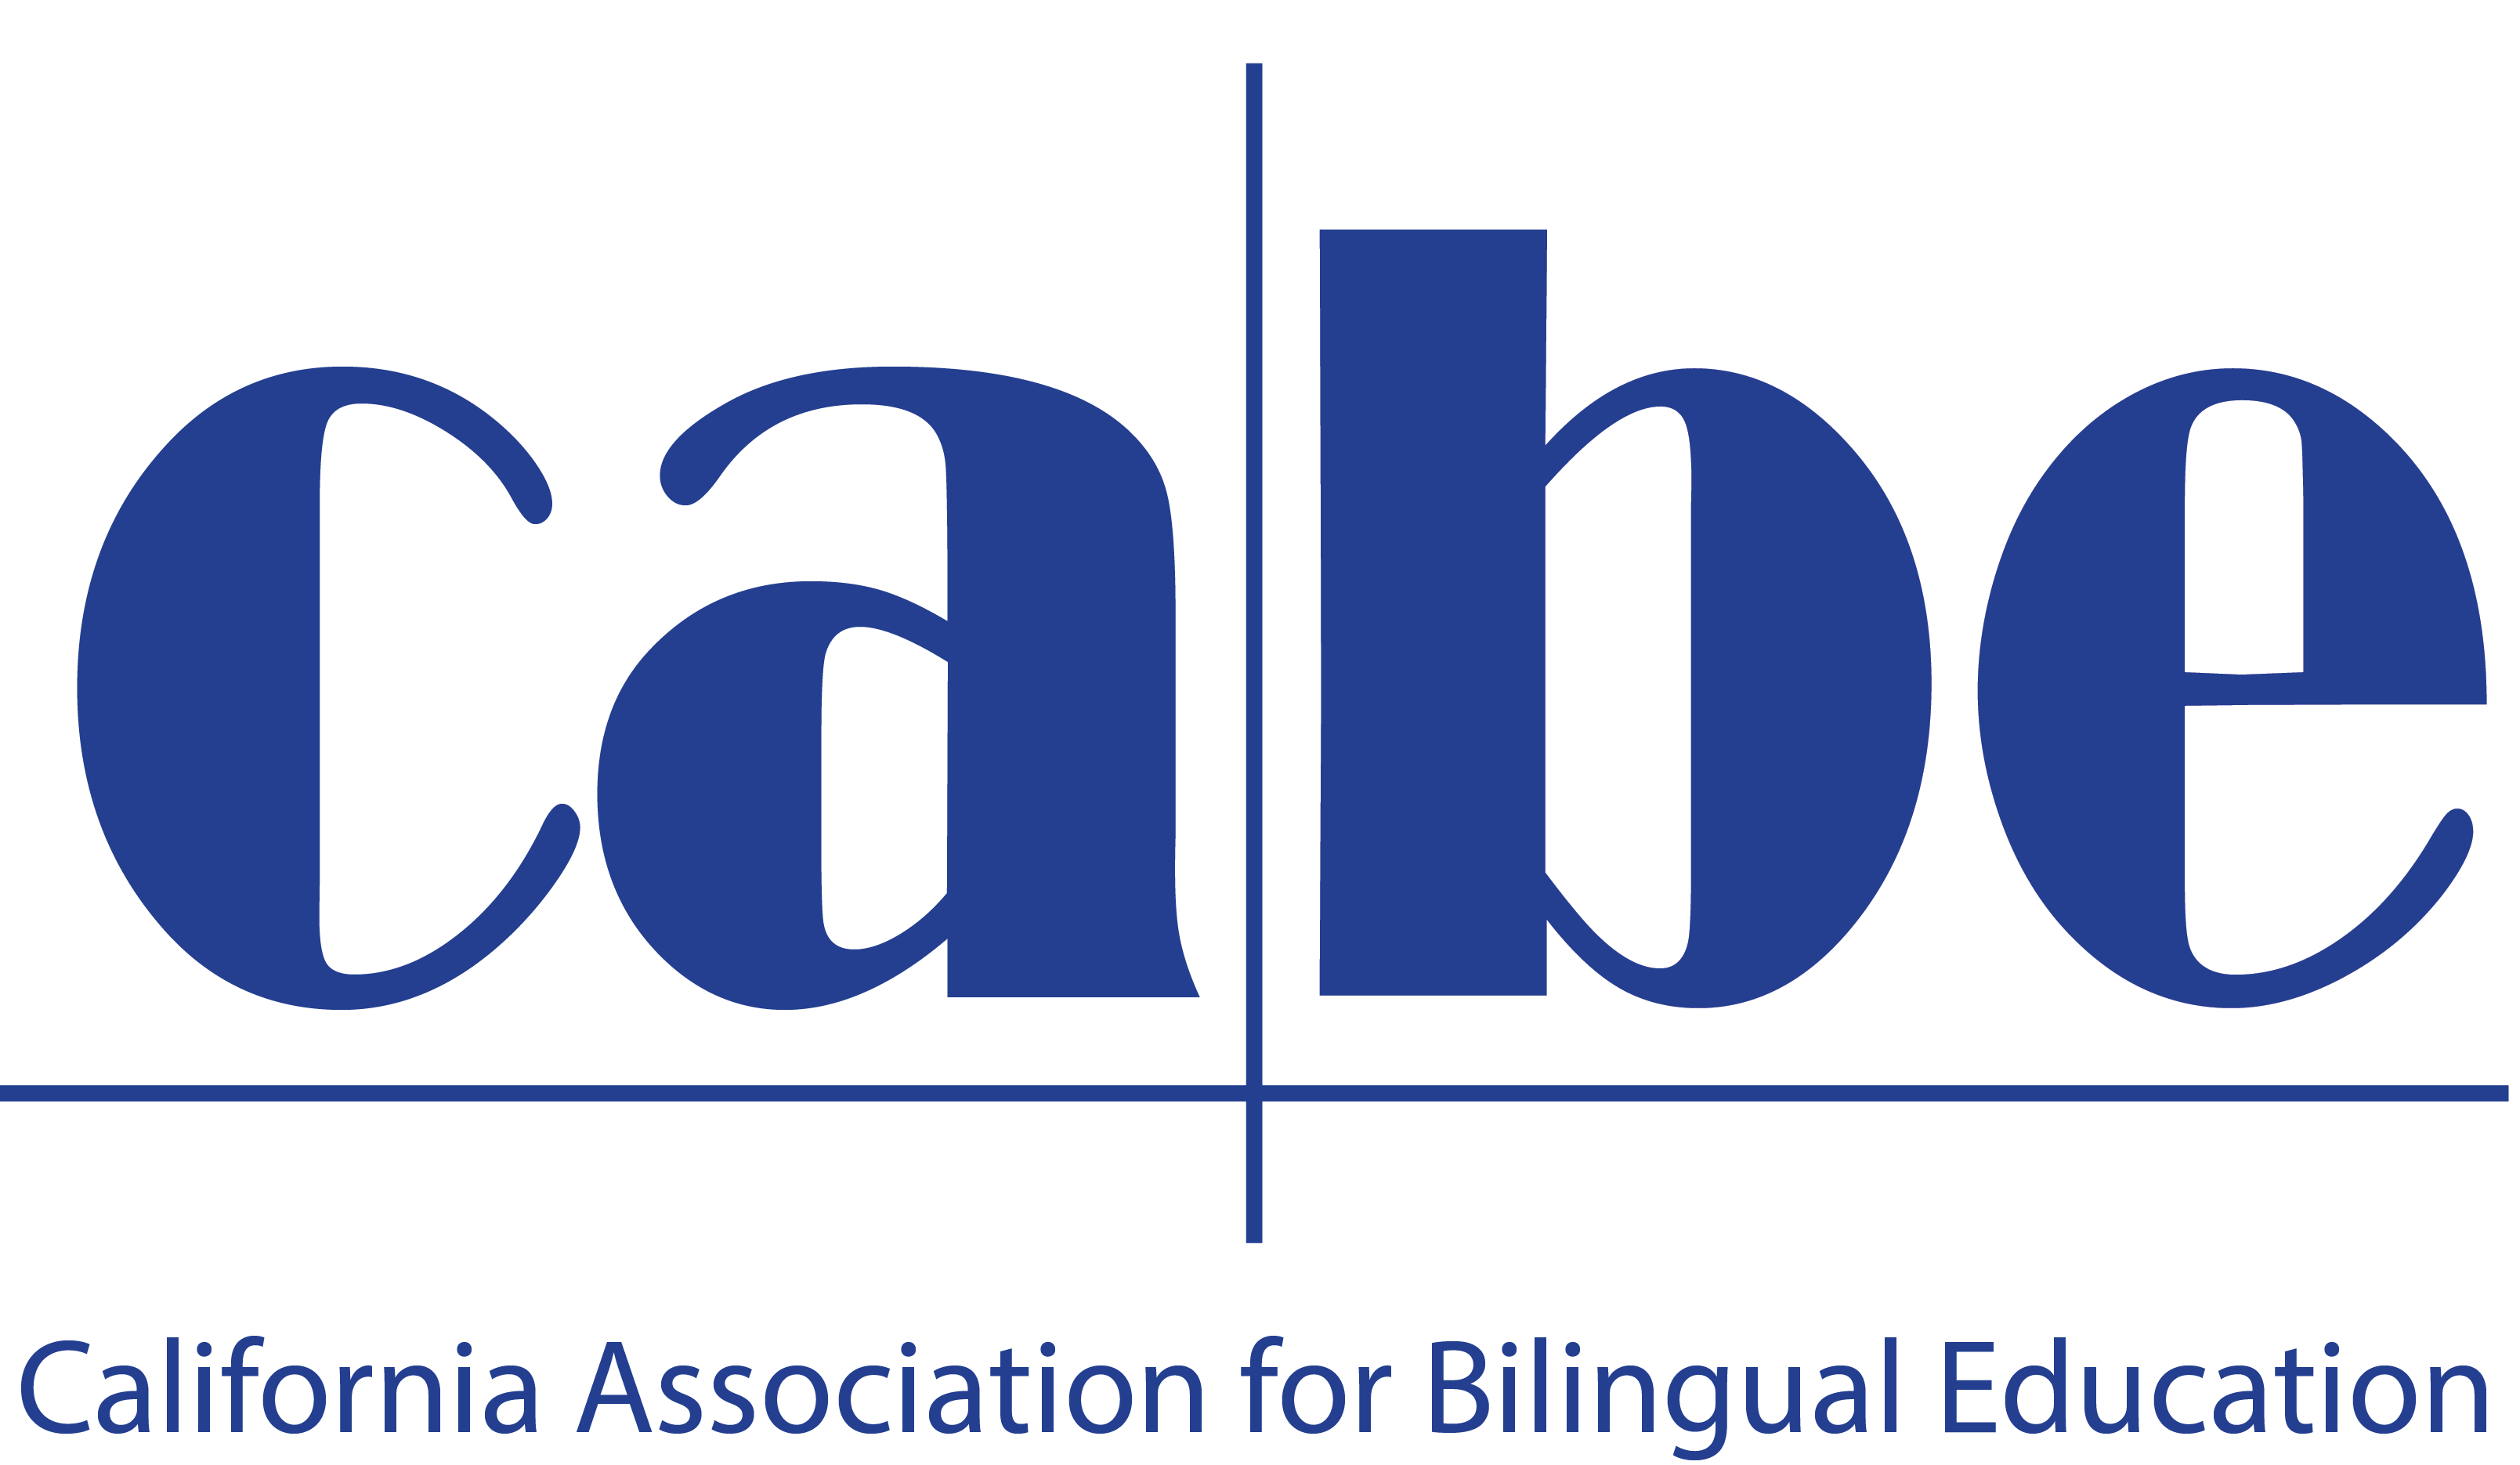 Resultado de imagen para california association for bilingual education